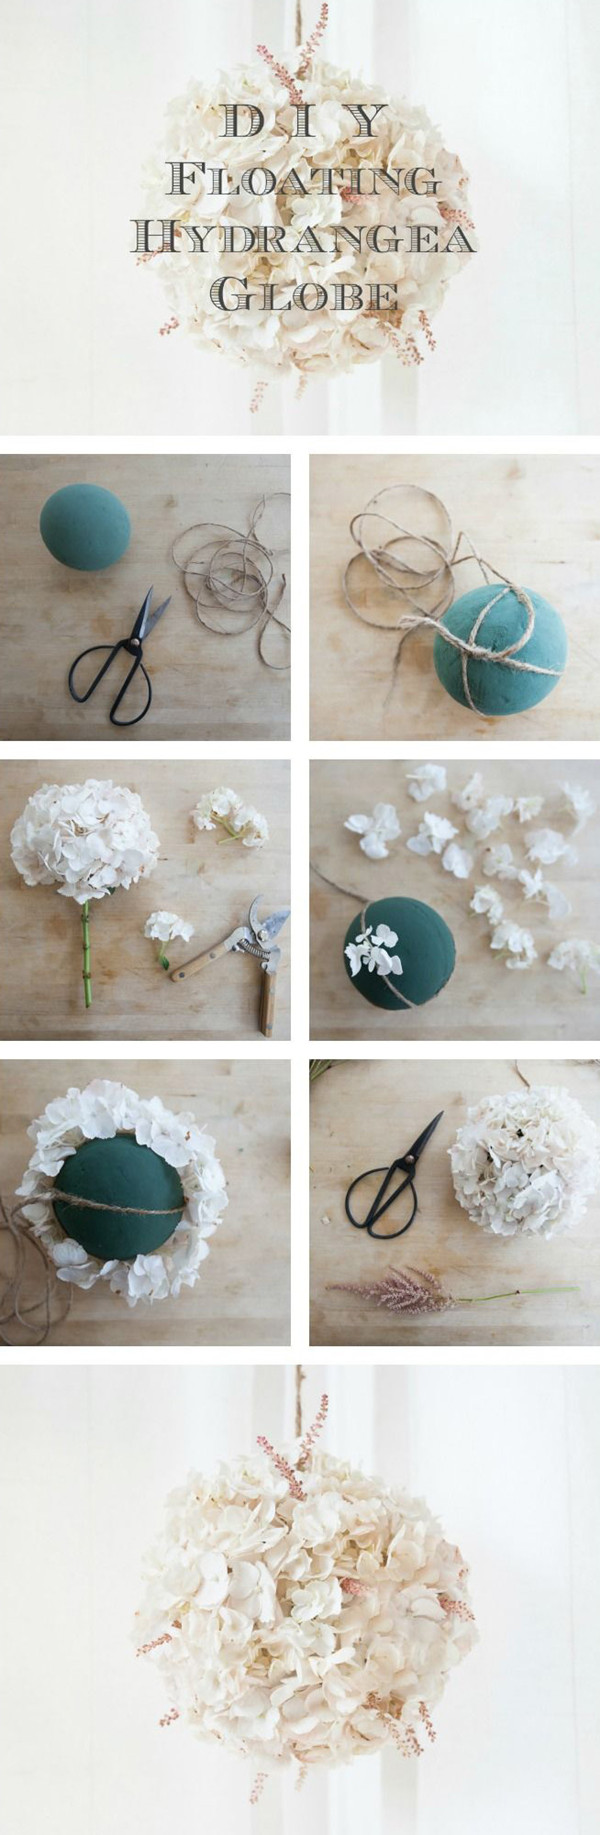 diy floating hydrangea globe for wedding decorations